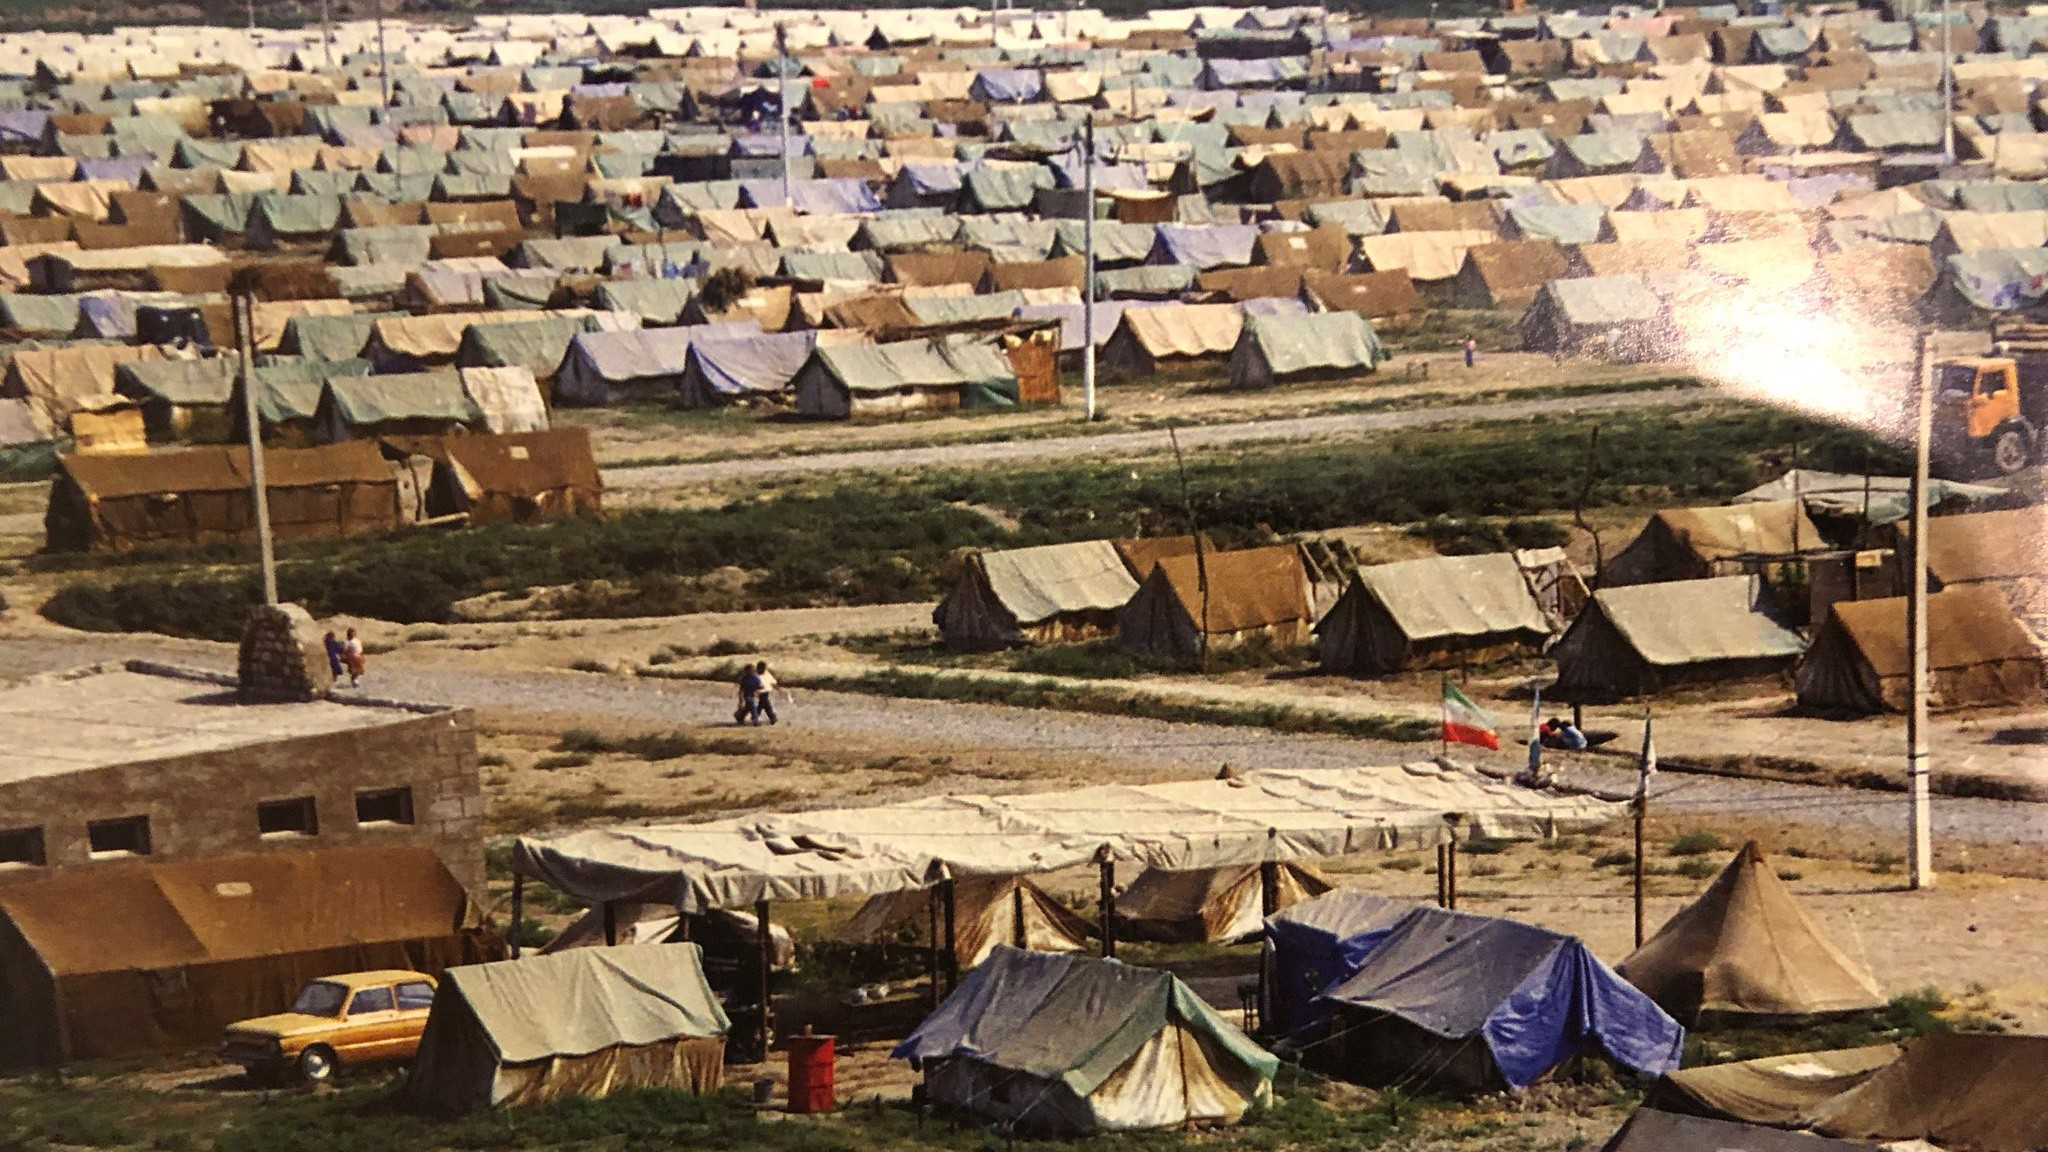 A sea of tents erected for Azerbaijani IDPs and refugees fleeing the war with Armenia. For many the tents would be home for y